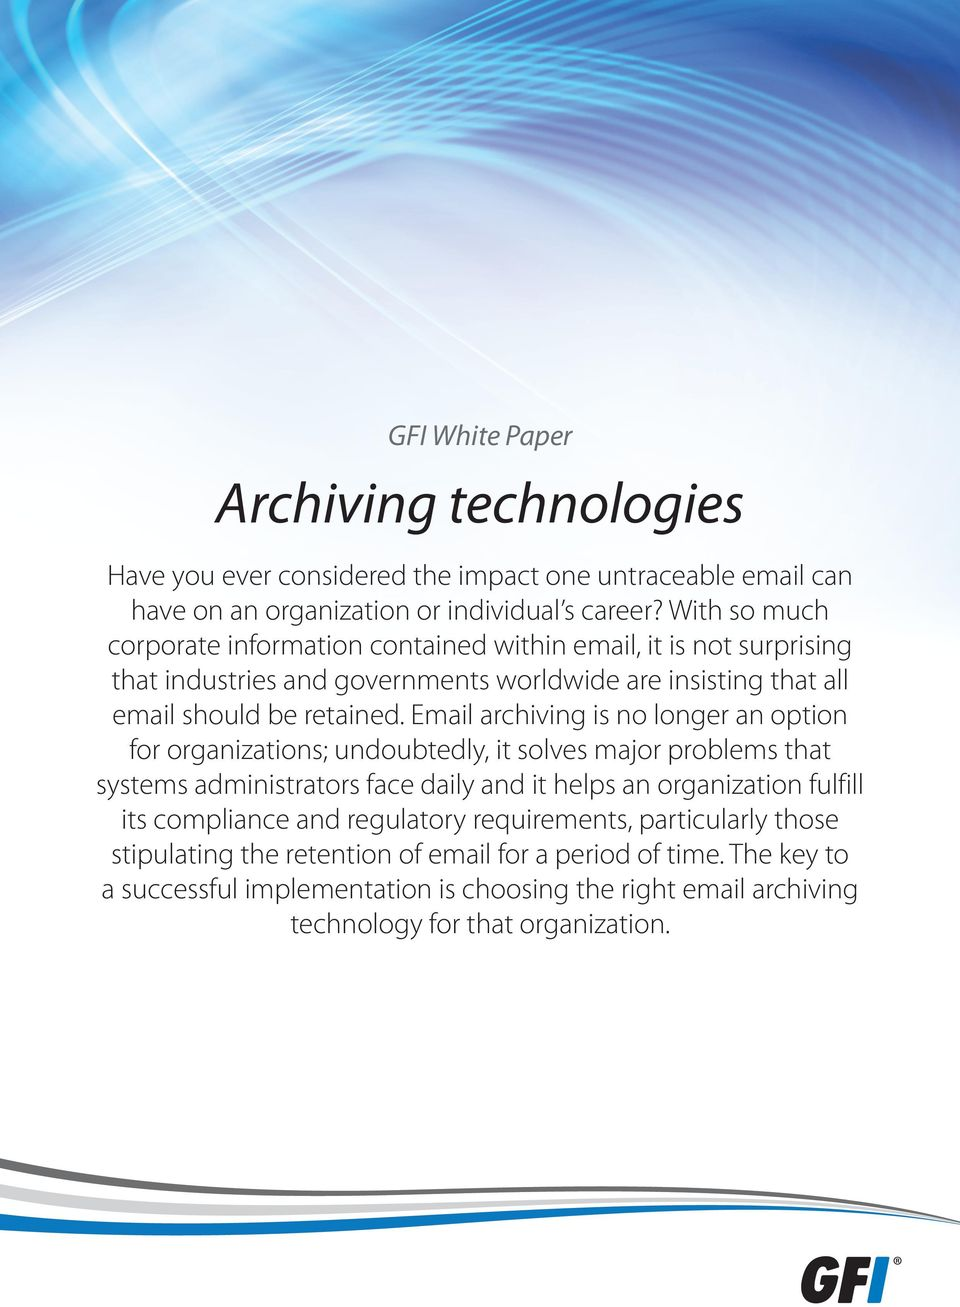 Email archiving is no longer an option for organizations; undoubtedly, it solves major problems that systems administrators face daily and it helps an organization fulfill its